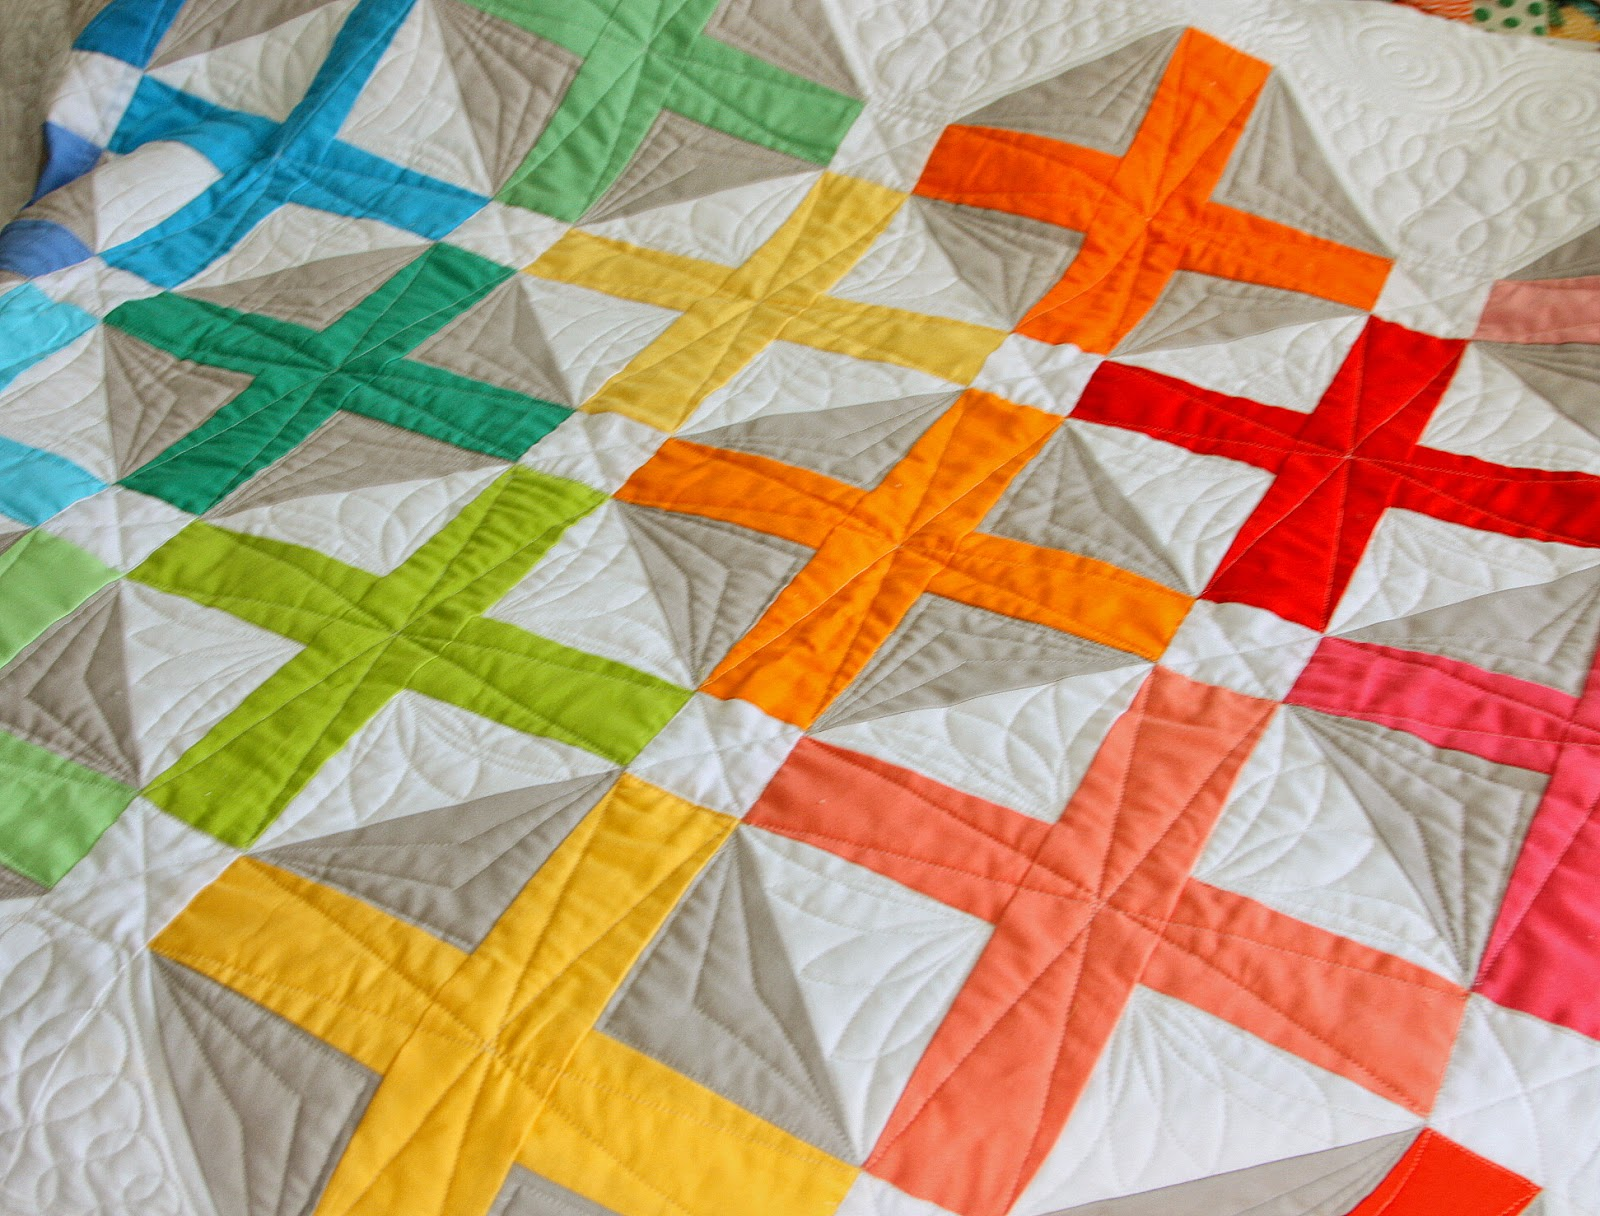 New Quilt Pattern for Sale - Hopscotch - Diary of a Quilter - a ... : hopscotch quilt pattern - Adamdwight.com